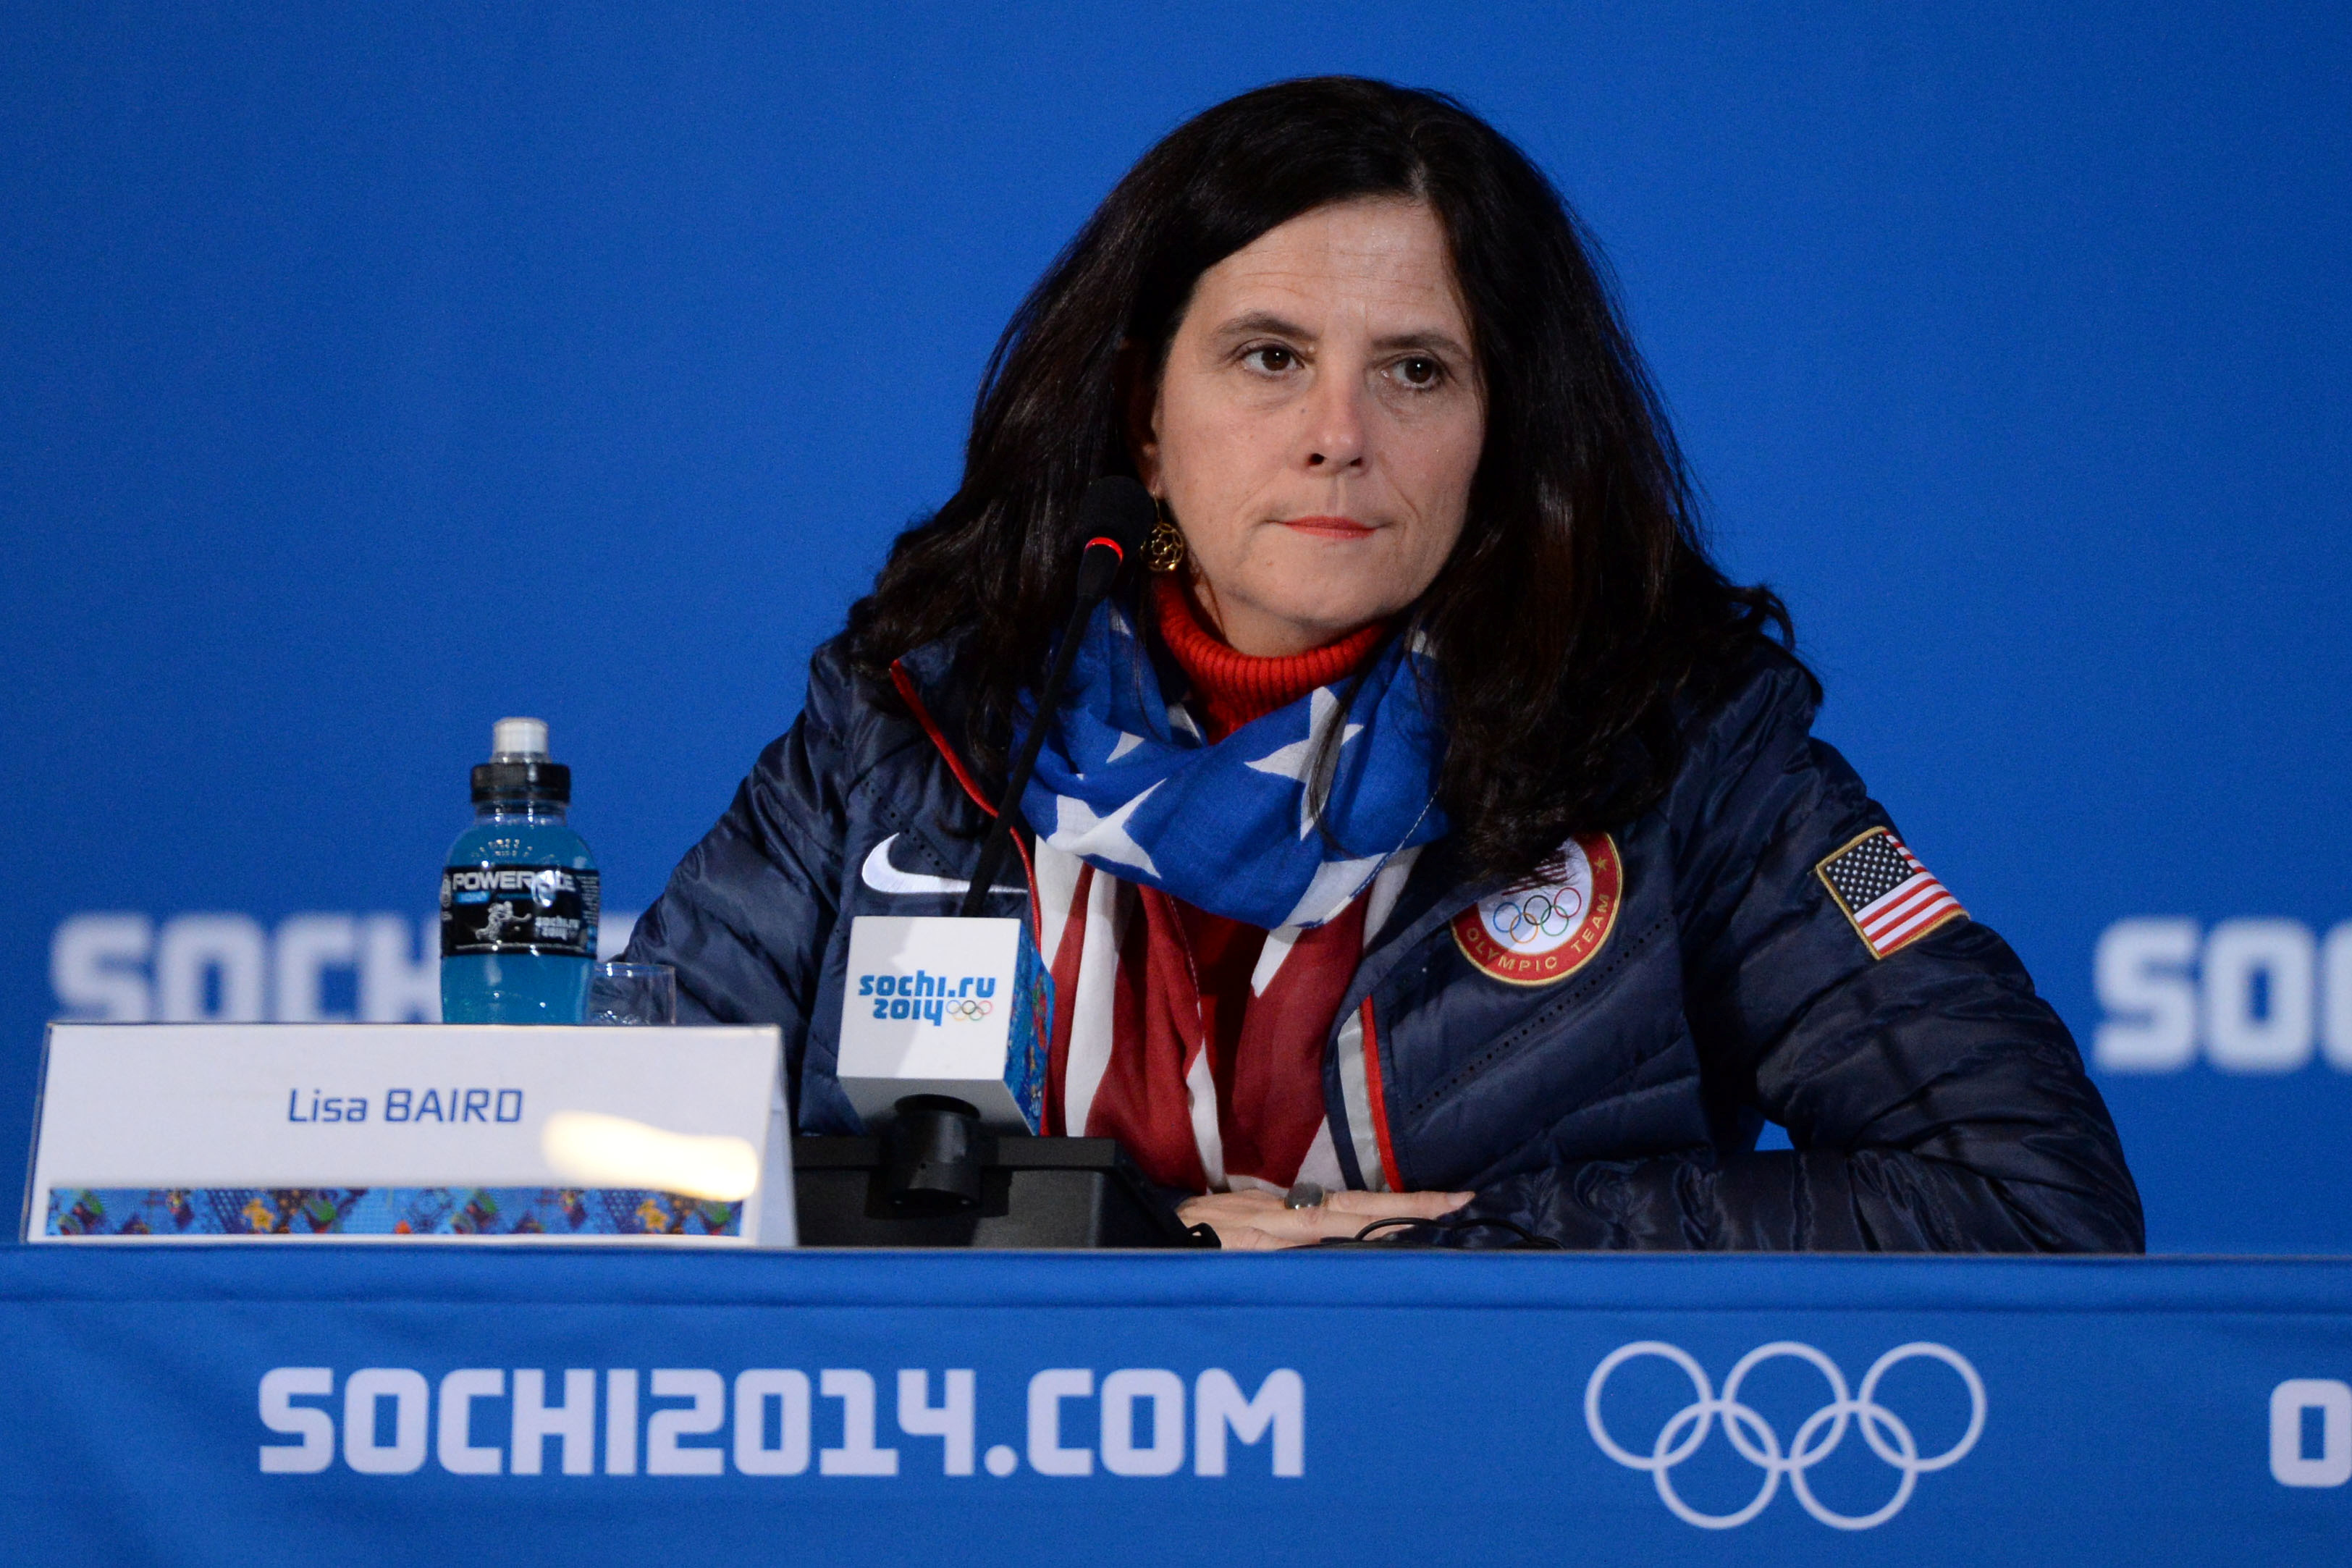 United States Olympic Committee (USOC) chief marketing officer Lisa Baird addresses the media in a USOC leadership news conference during the Sochi 2014 Olympic Winter Games at Main Press Center-Pushkin Hall in Sochi, Russia February 6, 2014. . Kyle Terada-USA TODAY Sports via REUTERS